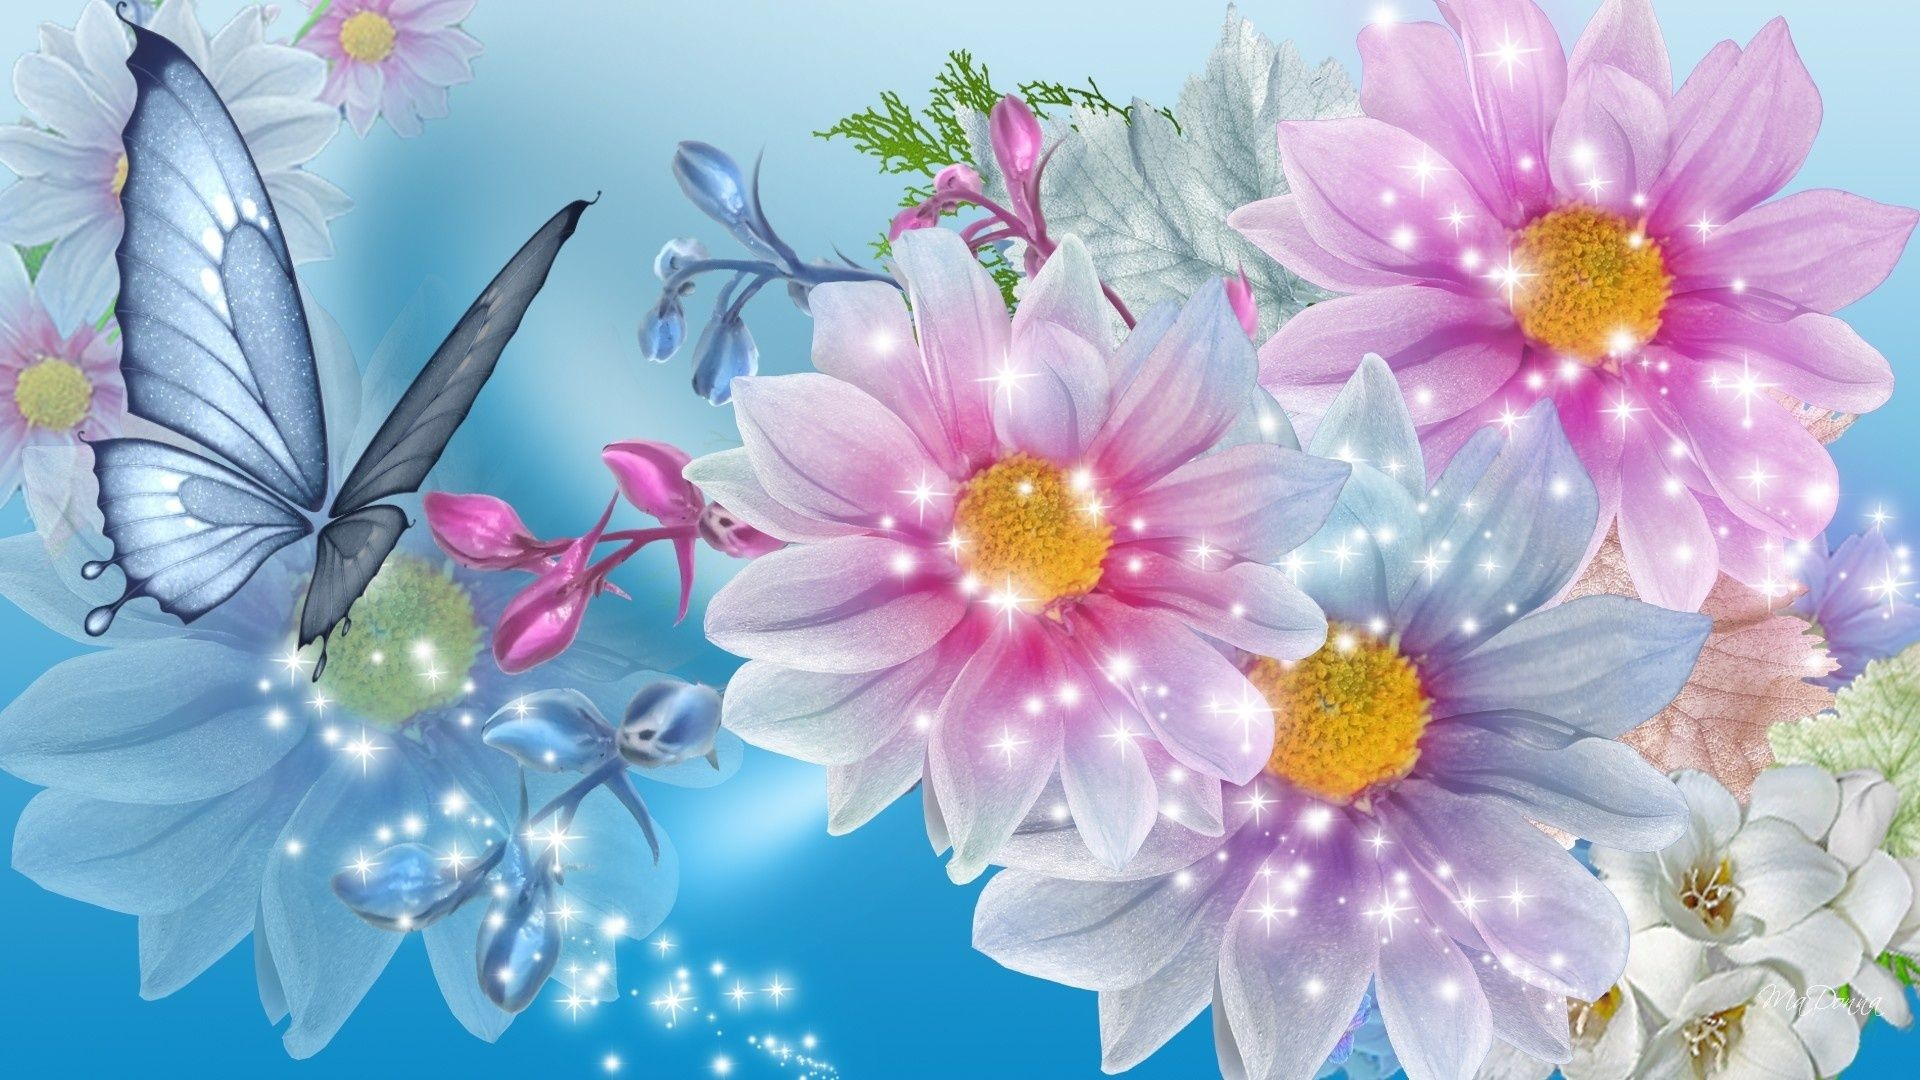 Pretty Flowers Pictures Desktop Wallpapers 68 Images